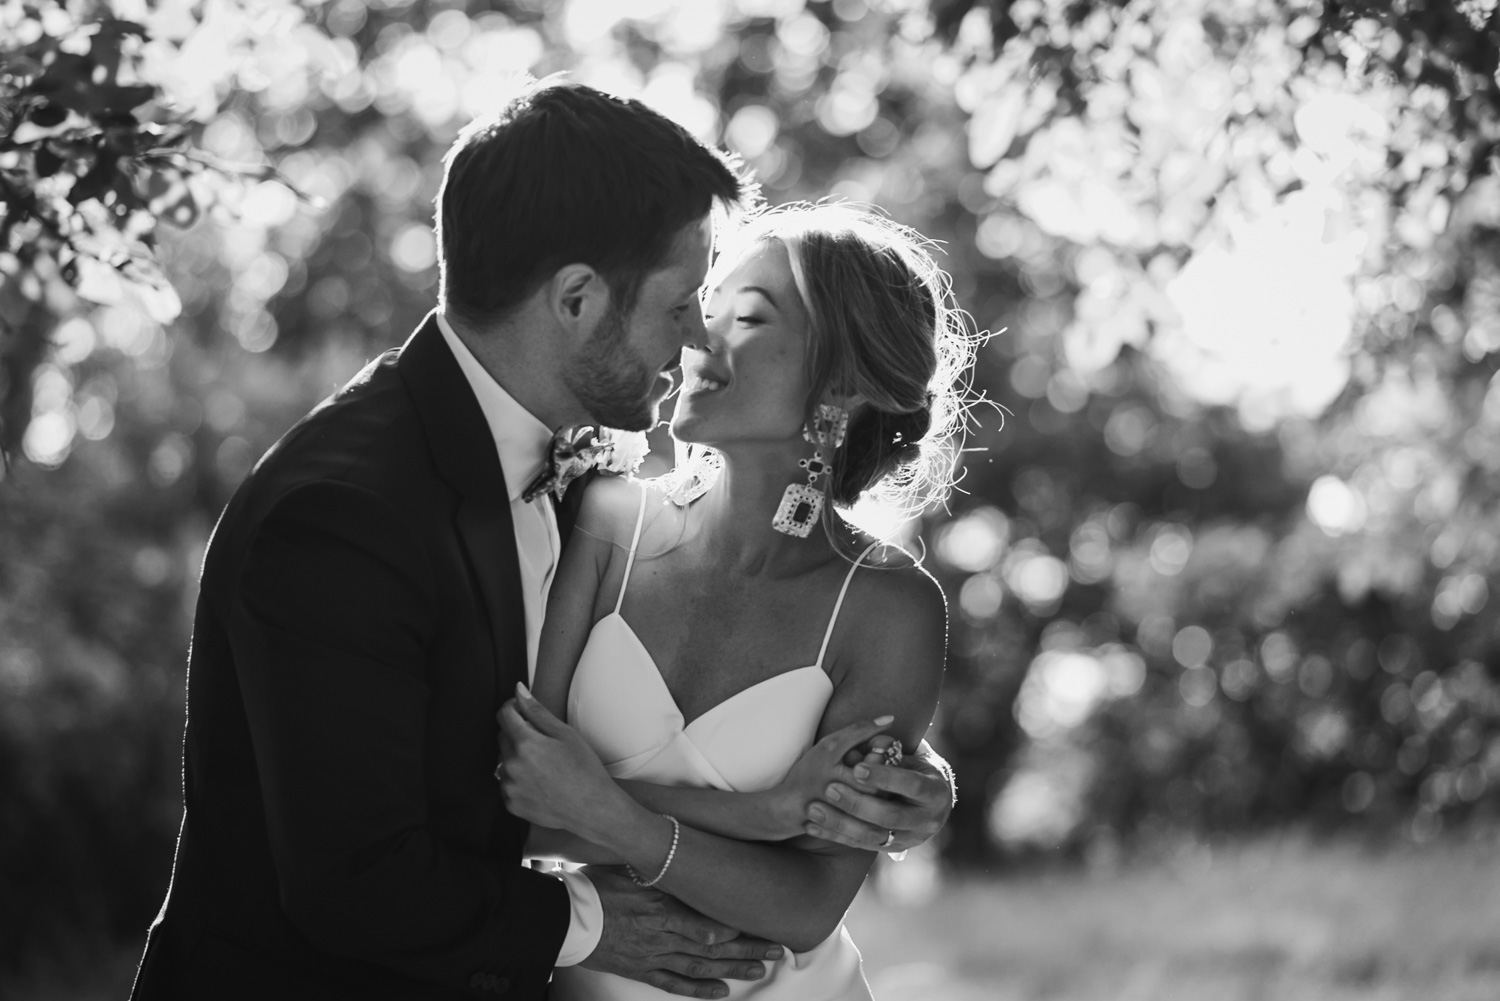 Wedding portrait, Carine Bea Photography, black & white photography